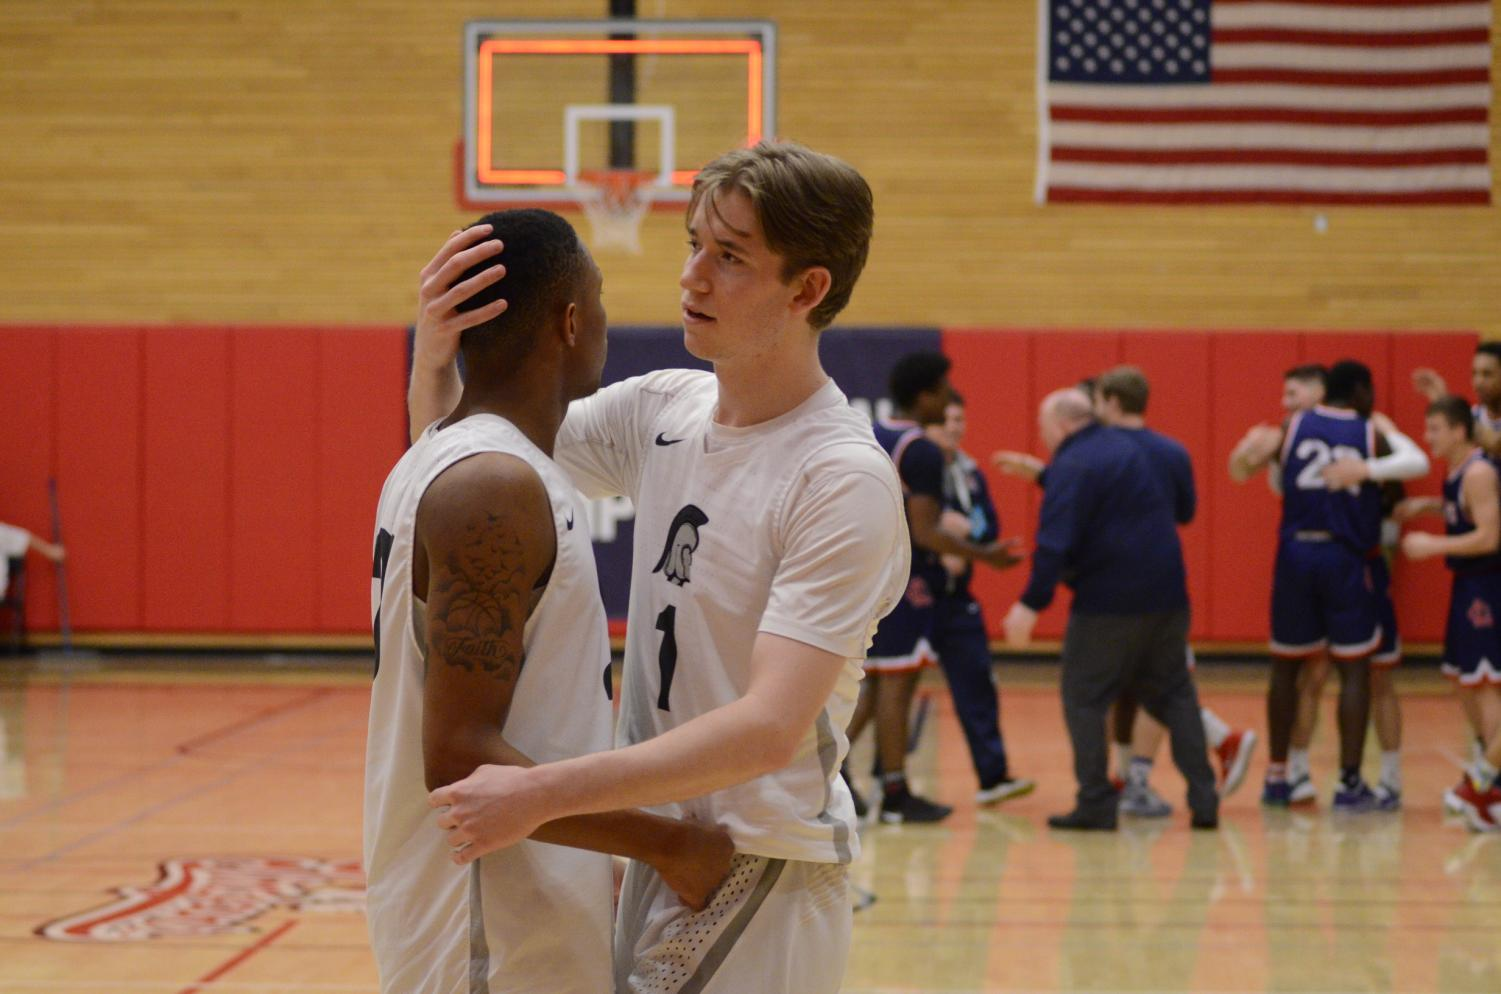 Trojans teammates Tori Odom (left) and Jon Parker (right) comfort one another as the Red Devils celebrate in the distance after the final buzzer in Thursday night's season-ending tournament loss to Lower Columbia College.